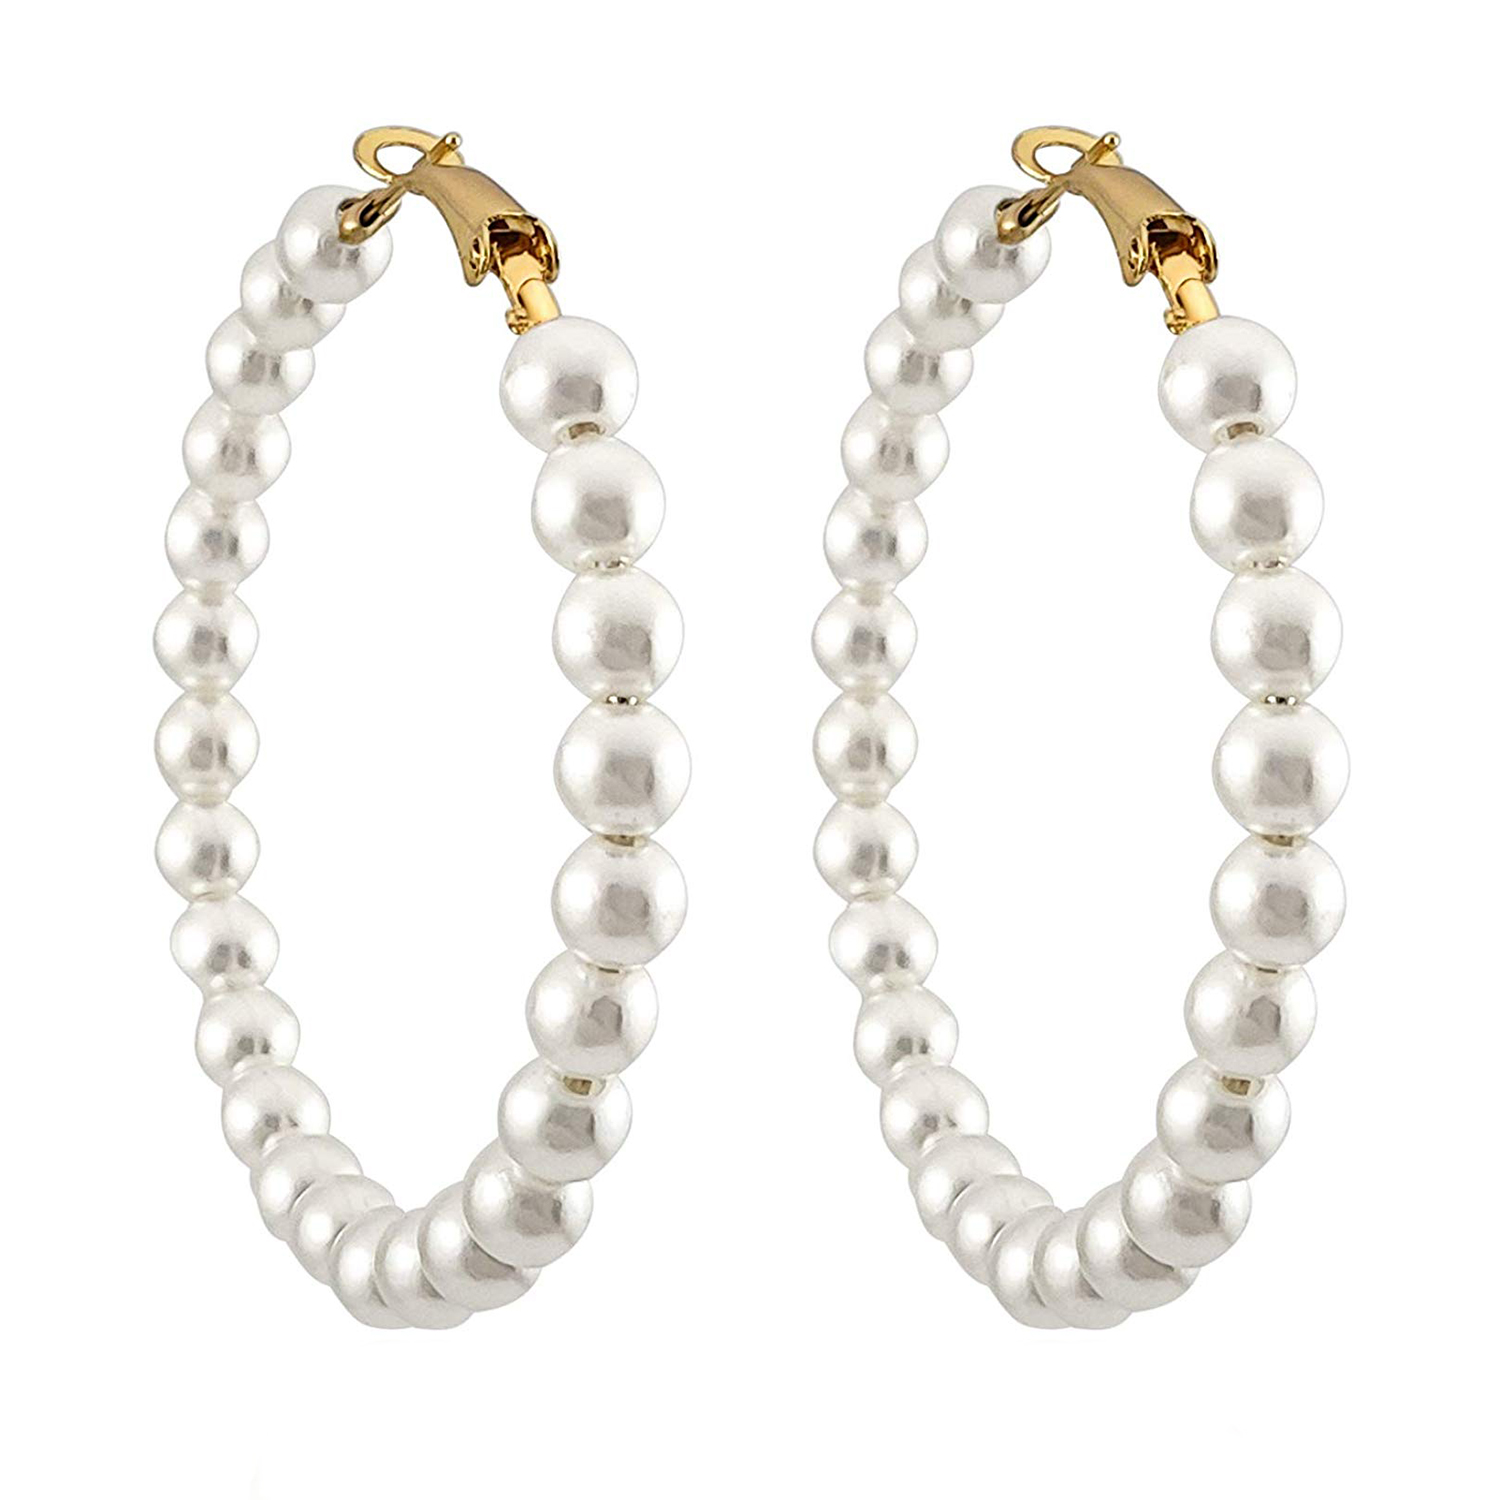 Pearl Hoop Earrings Dangle Hypoallergenic Layer Earrings